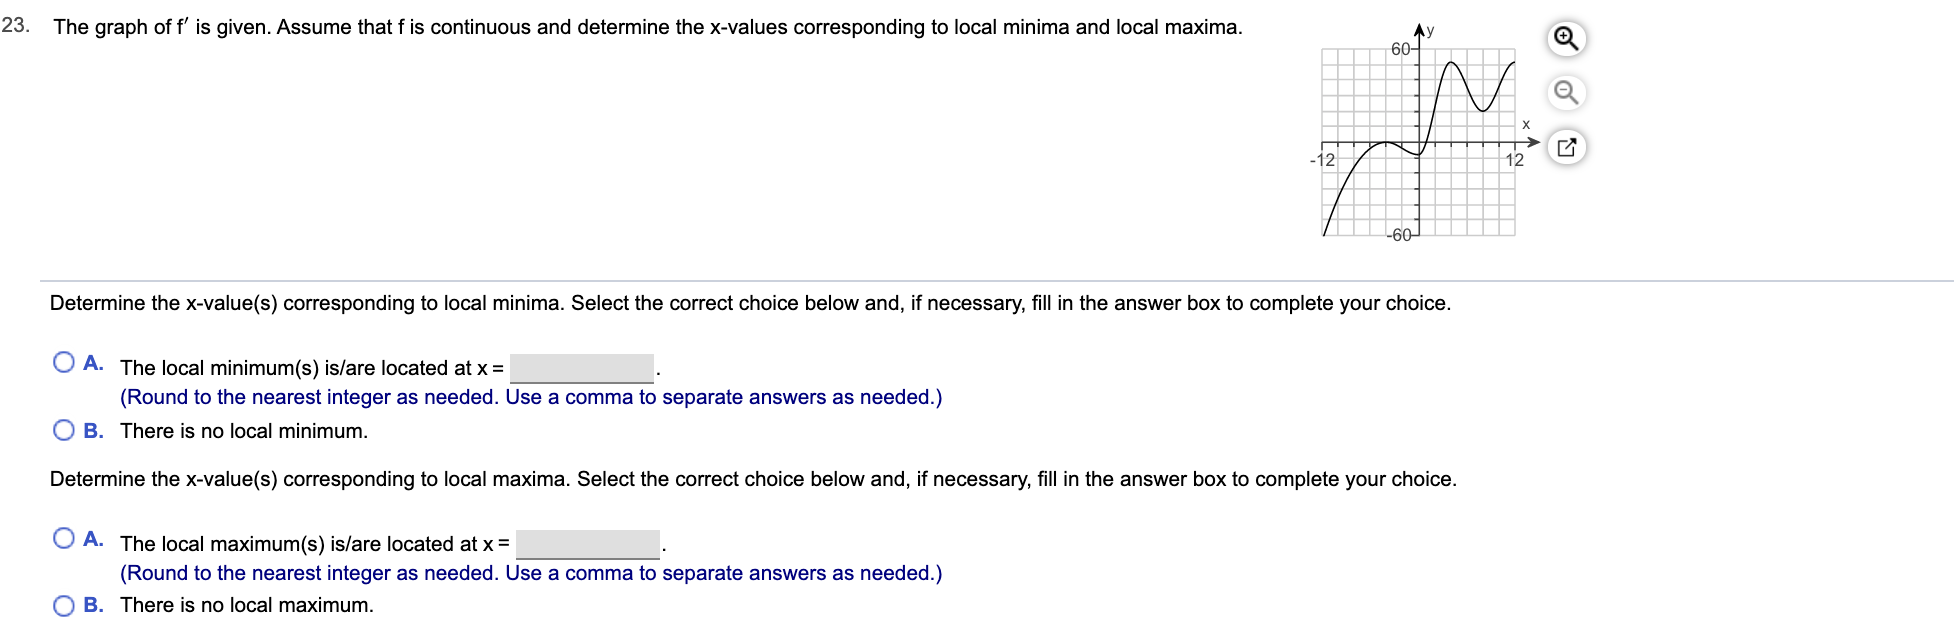 The graph of f' is given. Assume that f is continuous and determine the x-values corresponding to local minima and local maxima. 23. Ay 60- X -12 12 -60 Determine the x-value(s) corresponding to local minima. Select the correct choice below and, if necessary, fill in the answer box to complete your choice. A. The local minimum(s) is/are located at x (Round to the nearest integer as needed. Use a comma to separate answers as needed.) B. There is no local minimum. Determine the x-value(s) corresponding to local maxima. Select the correct choice below and, if necessary, fill in the answer box to complete your choice. A. The local maximum(s) is/are located at x = (Round to the nearest integer as needed. Use a comma to separate answers as needed.) O B. There is no local maximum.